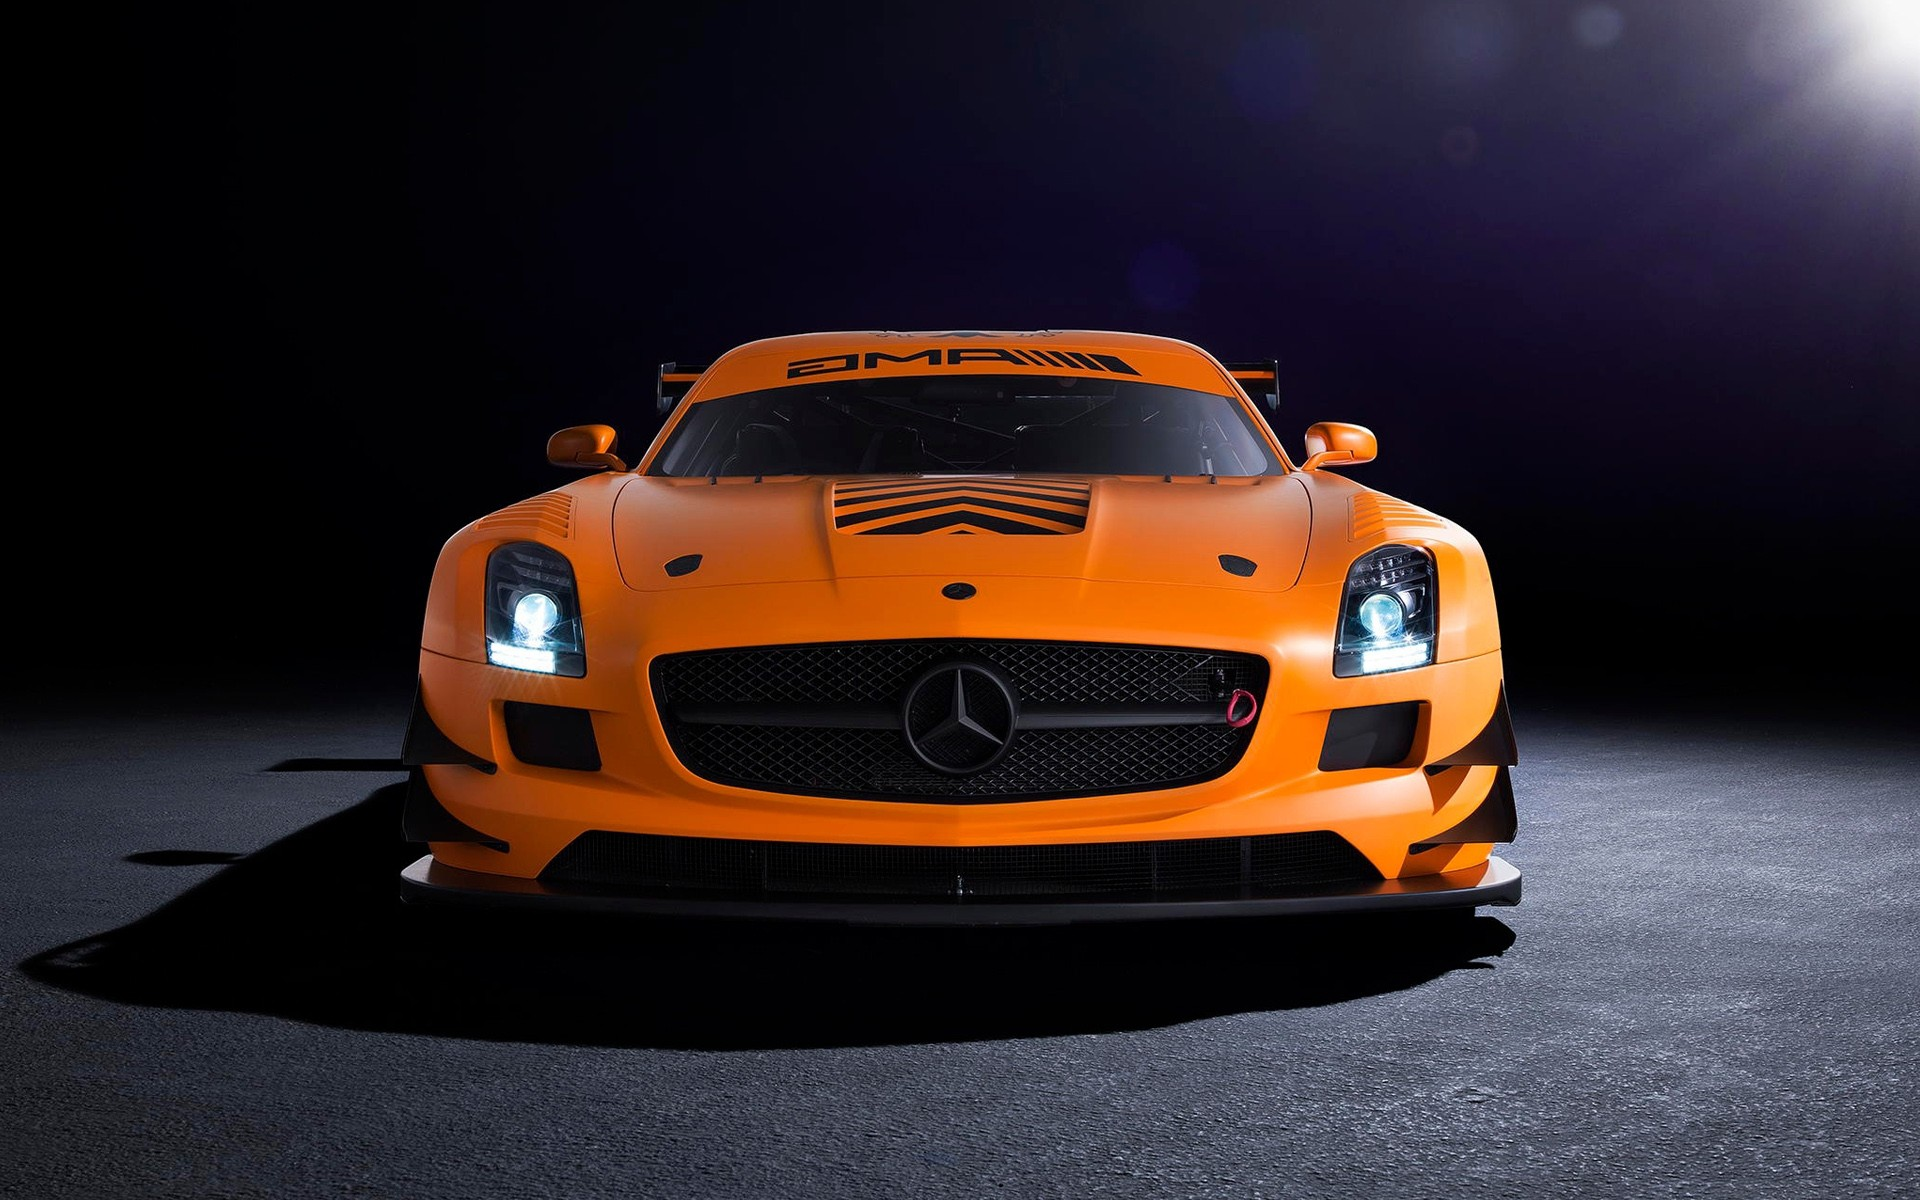 mercedes amg sls gt3 hd cars 4k wallpapers images. Black Bedroom Furniture Sets. Home Design Ideas